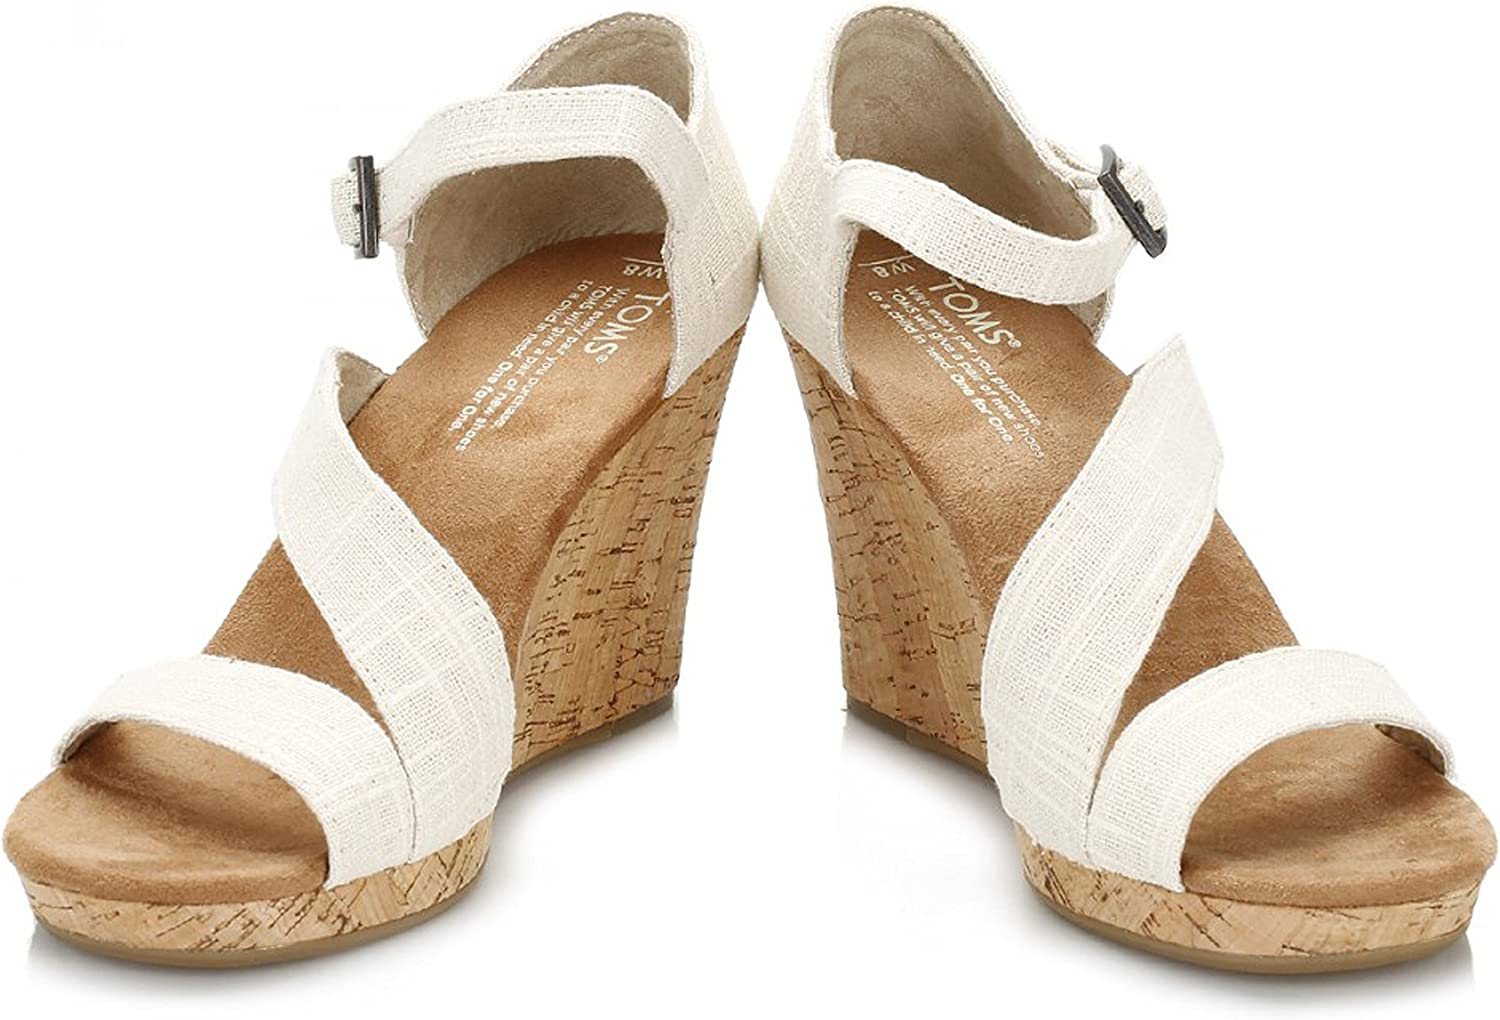 Black Canvas Women's Strappy Wedges 024001B12 Natural